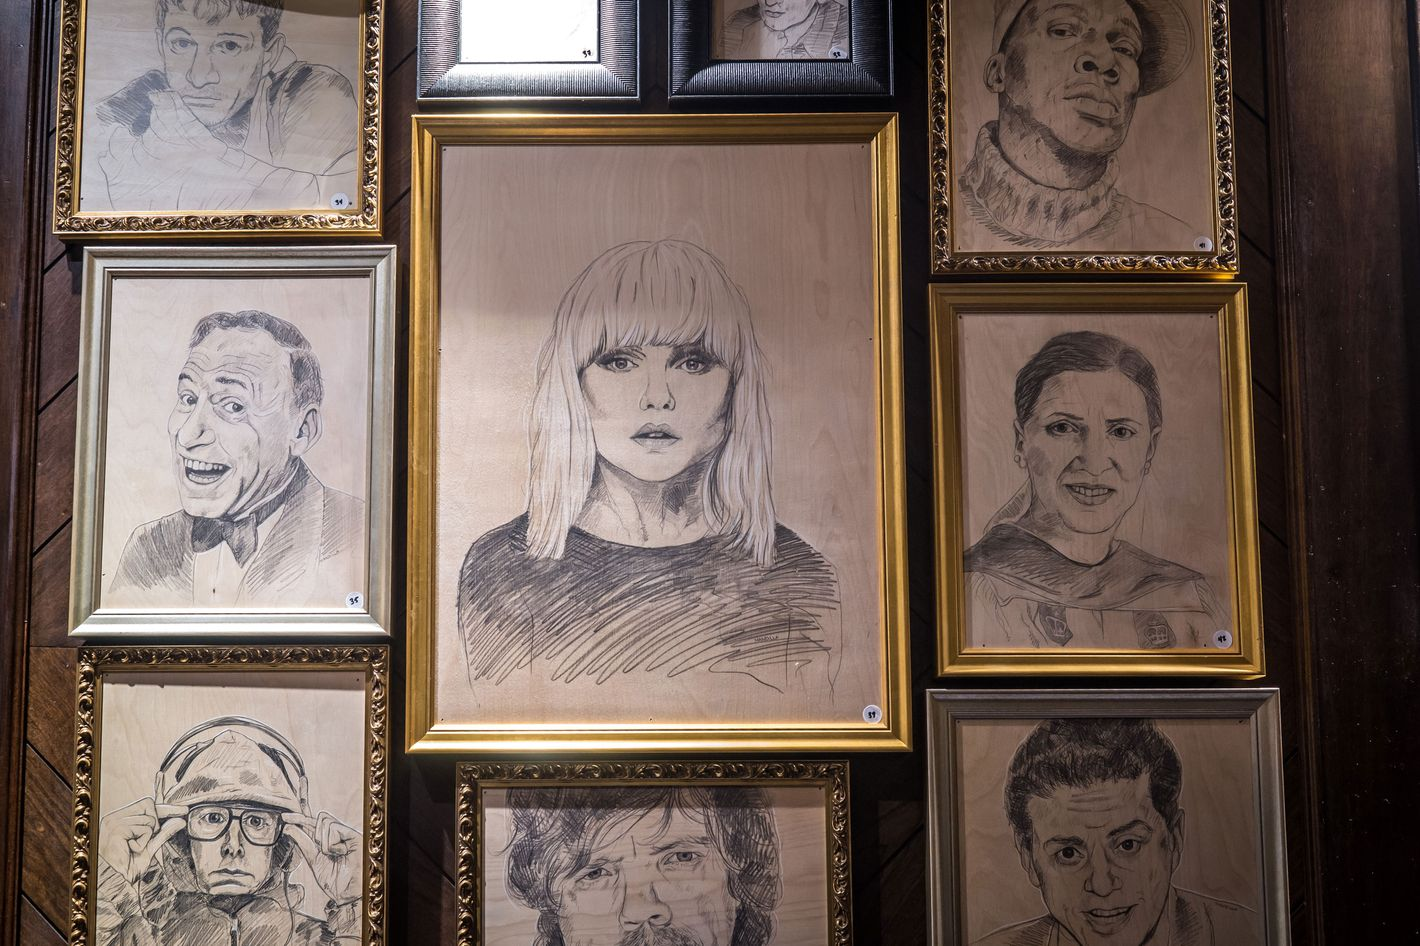 Just a few of the 83 portraits currently hanging in the Suffolk Arms.